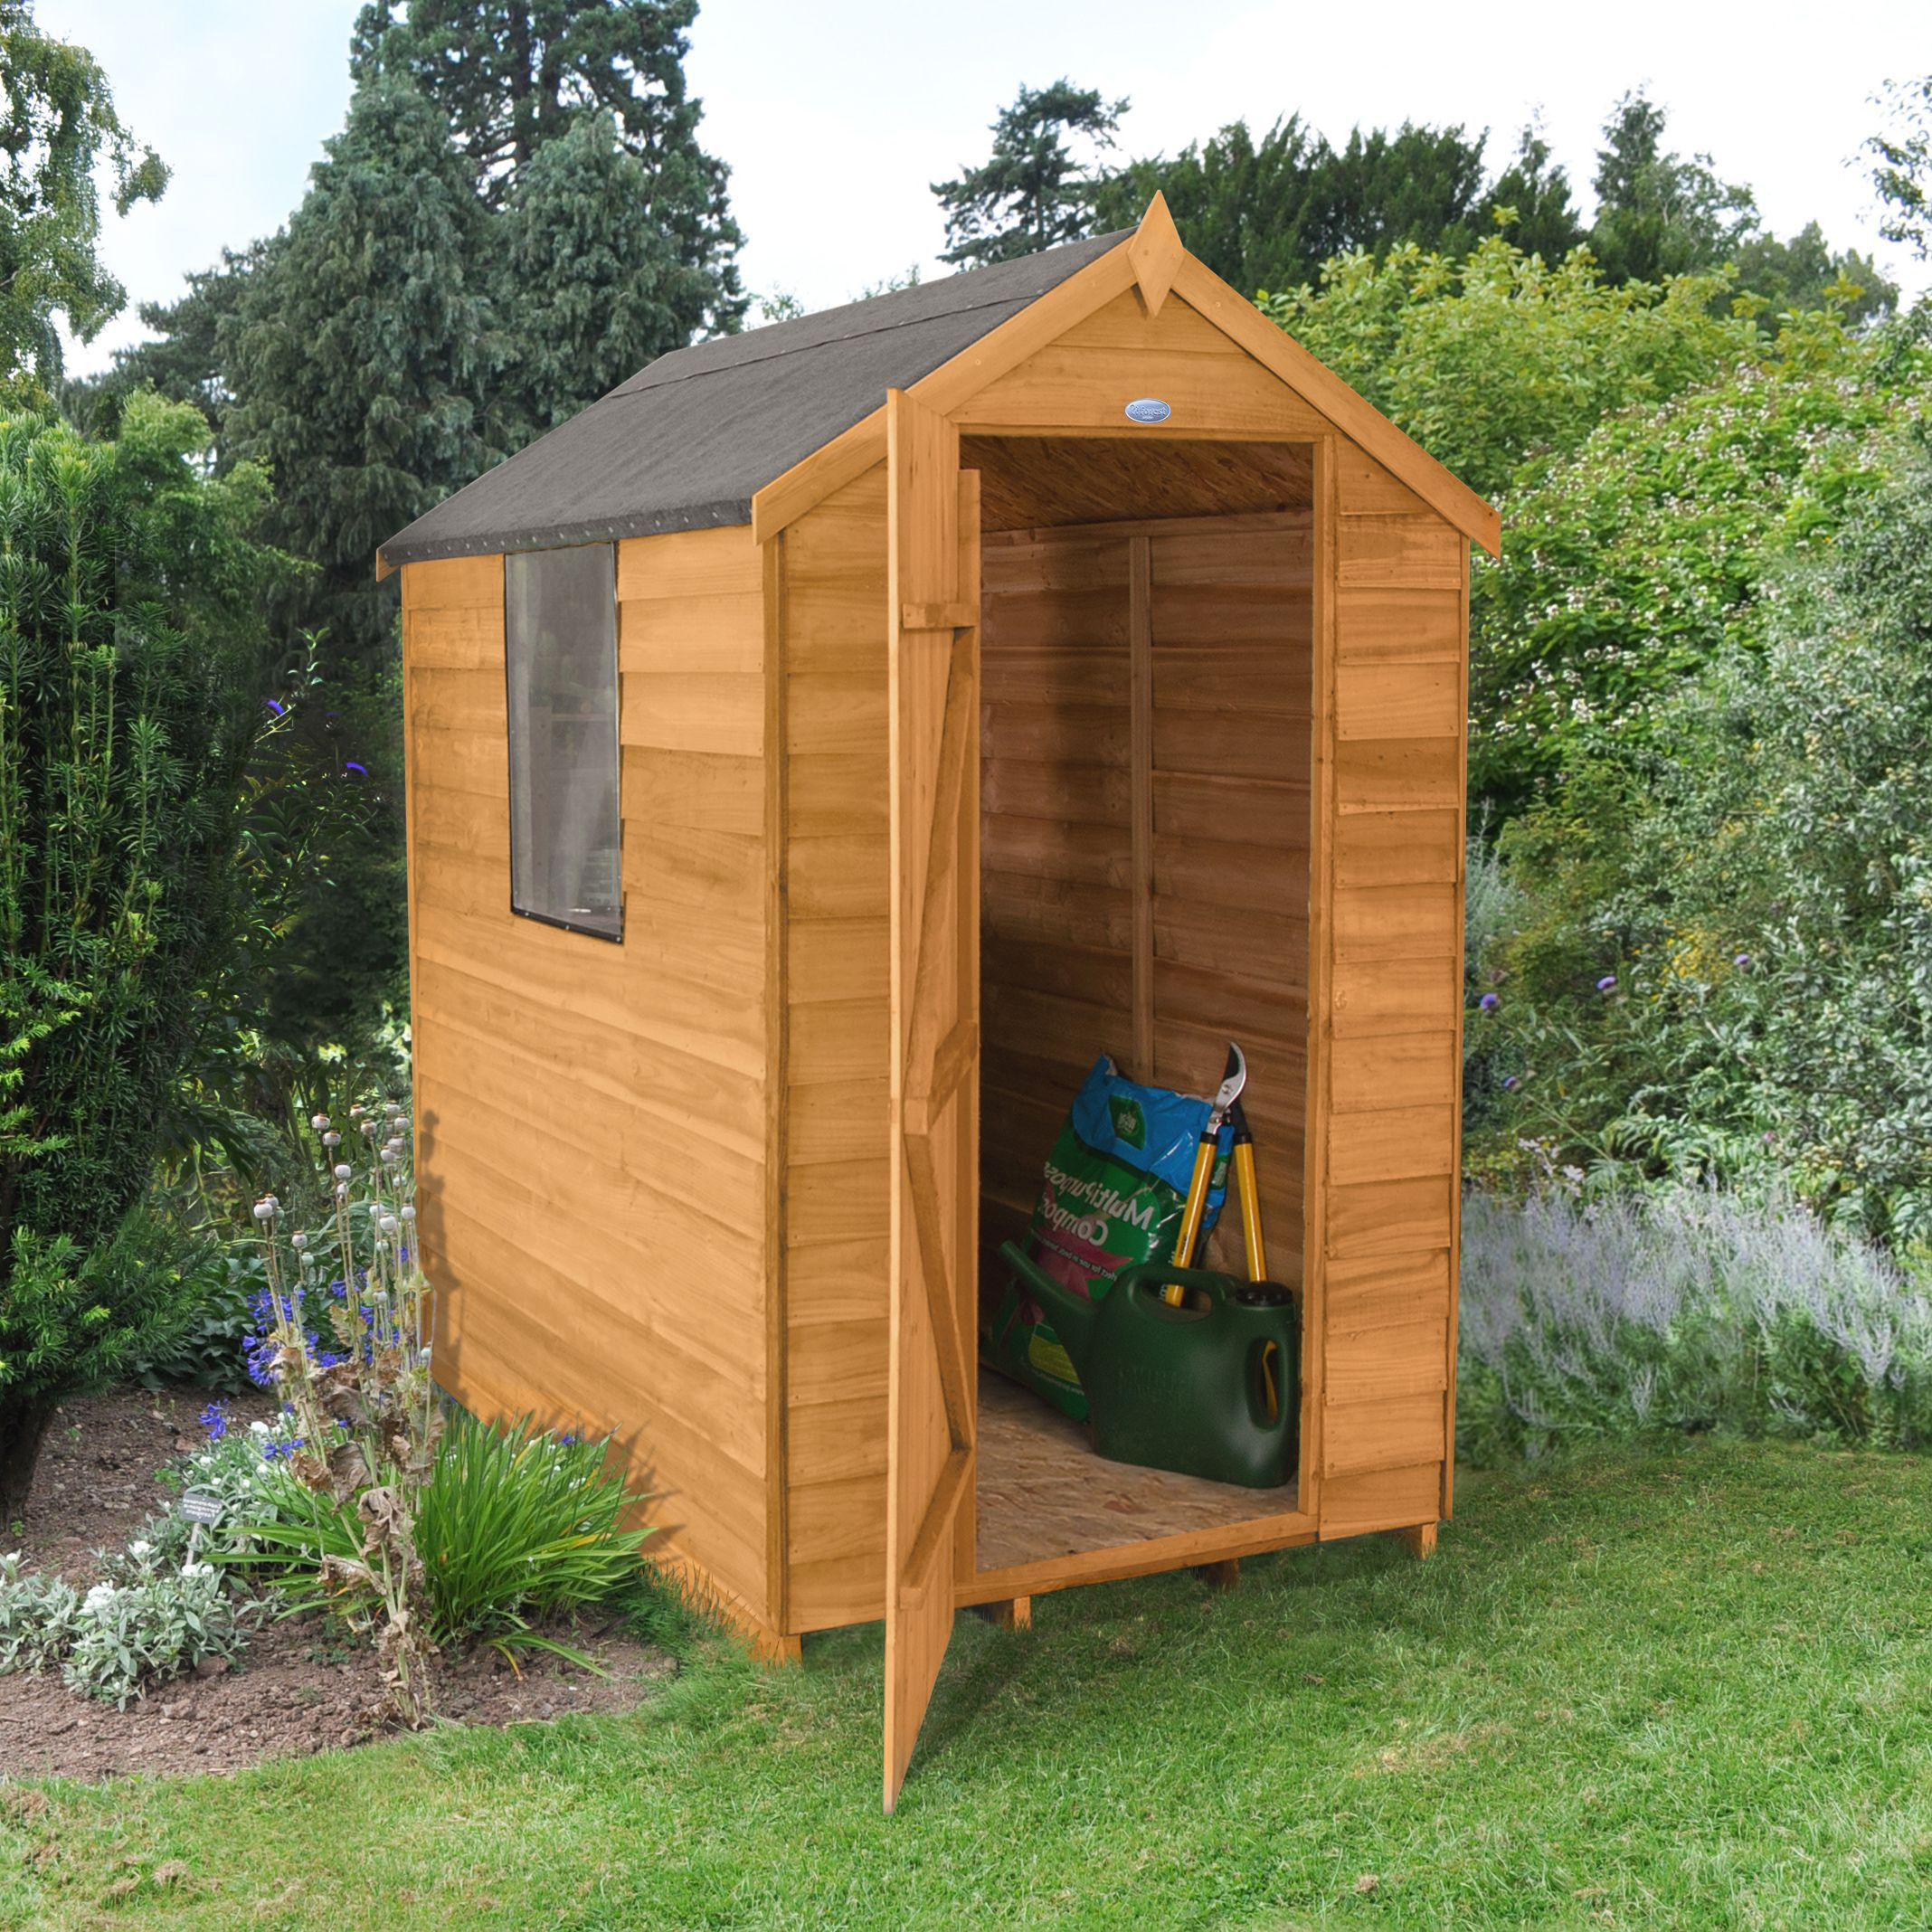 Best ideas about DIY Backyard Sheds . Save or Pin 6x4 Forest Apex Overlap Wooden Shed Departments Now.